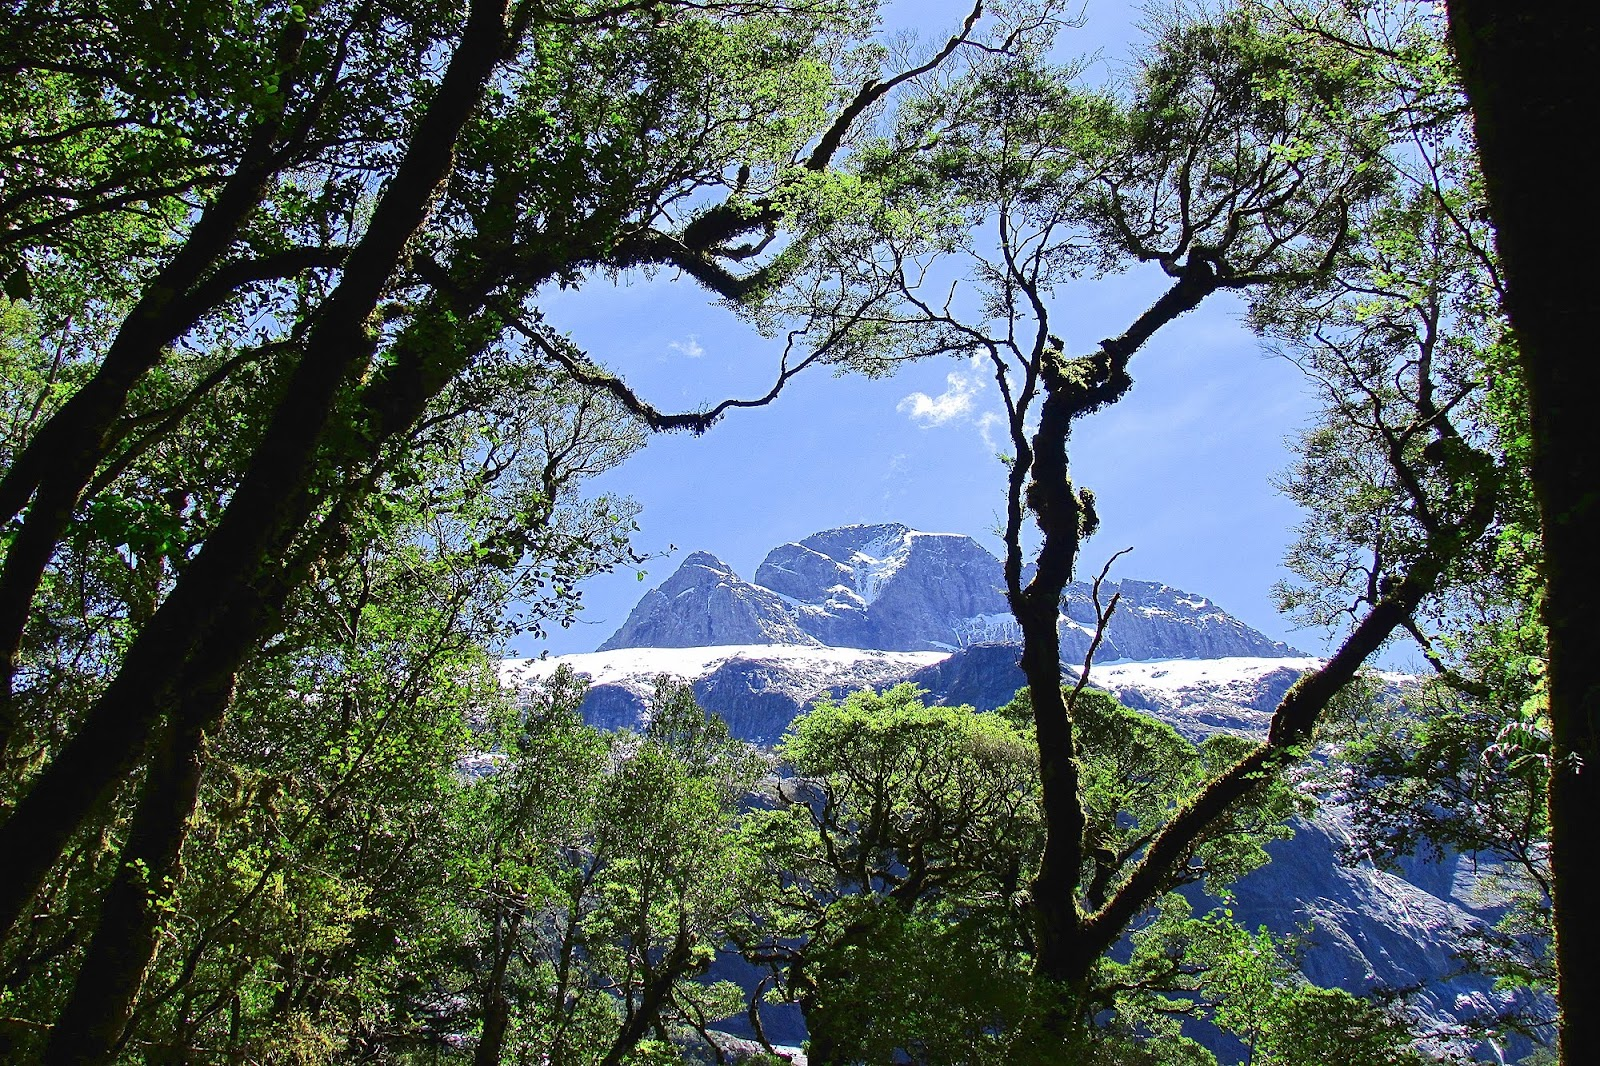 Milford Sound Trees and Mountains.jpg